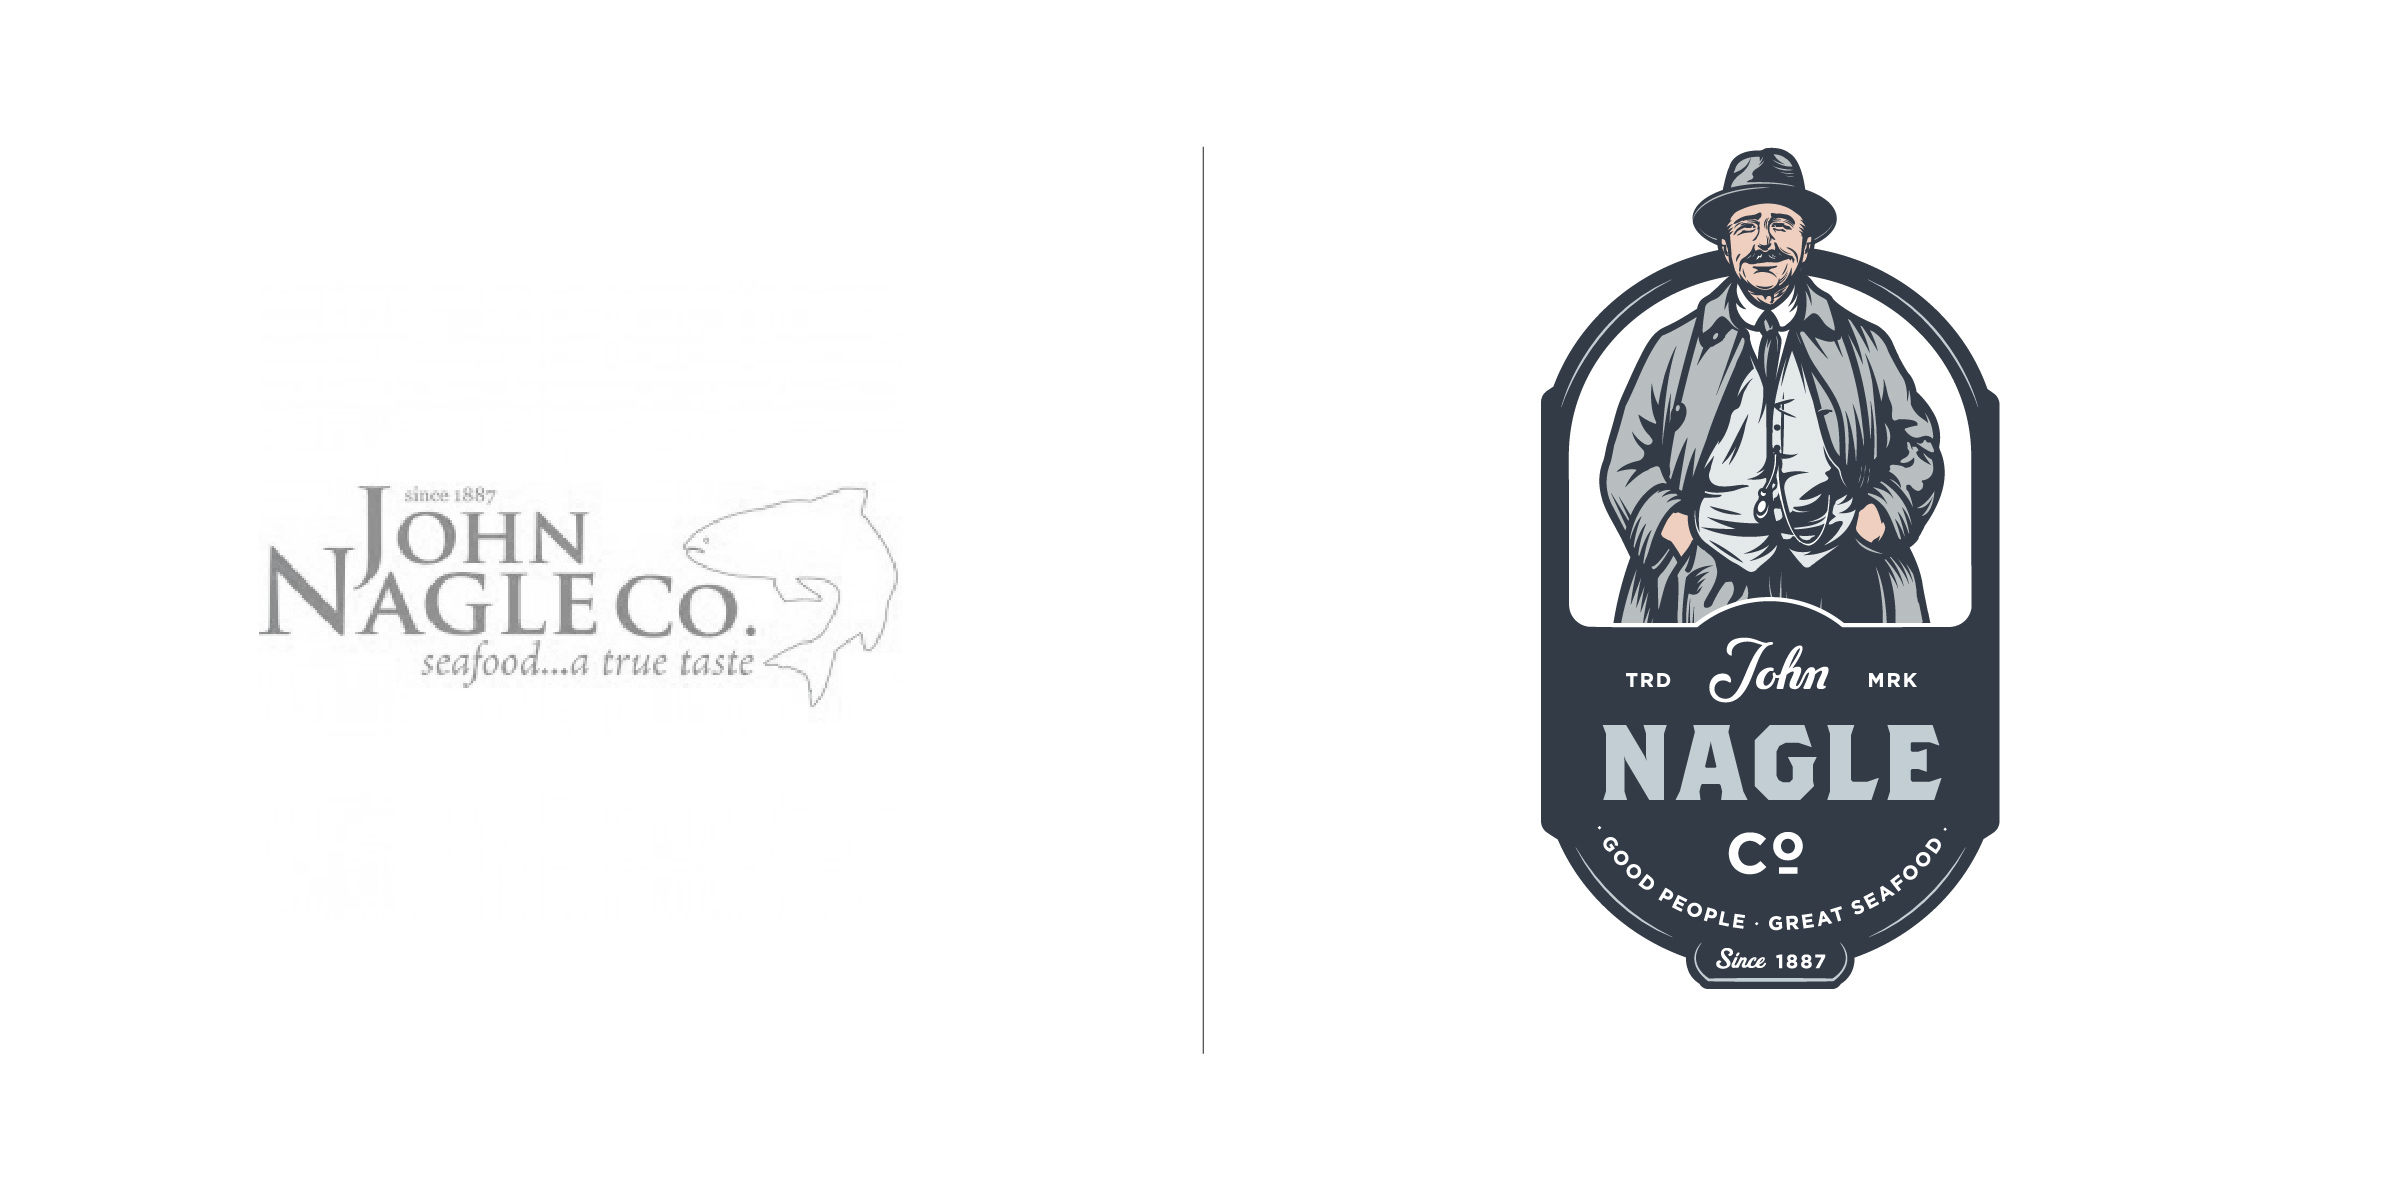 The client —   John Nagle Co. is a Boston based seafood distribution business founded in 1887  The goal — It is crucial for companies in ever changing industries to keep their logos current (and not solely rely on an impressive company history). Our goal was to show a more personable, human side of the John Nagle Co. while also authentically representing their founder and namesake. When a handshake means more than a contract on a piece of paper, this logo helps tell their story while maintaining a modern design aesthetic that speaks to their sustainable, forward thinking practices in an ever evolving industry.